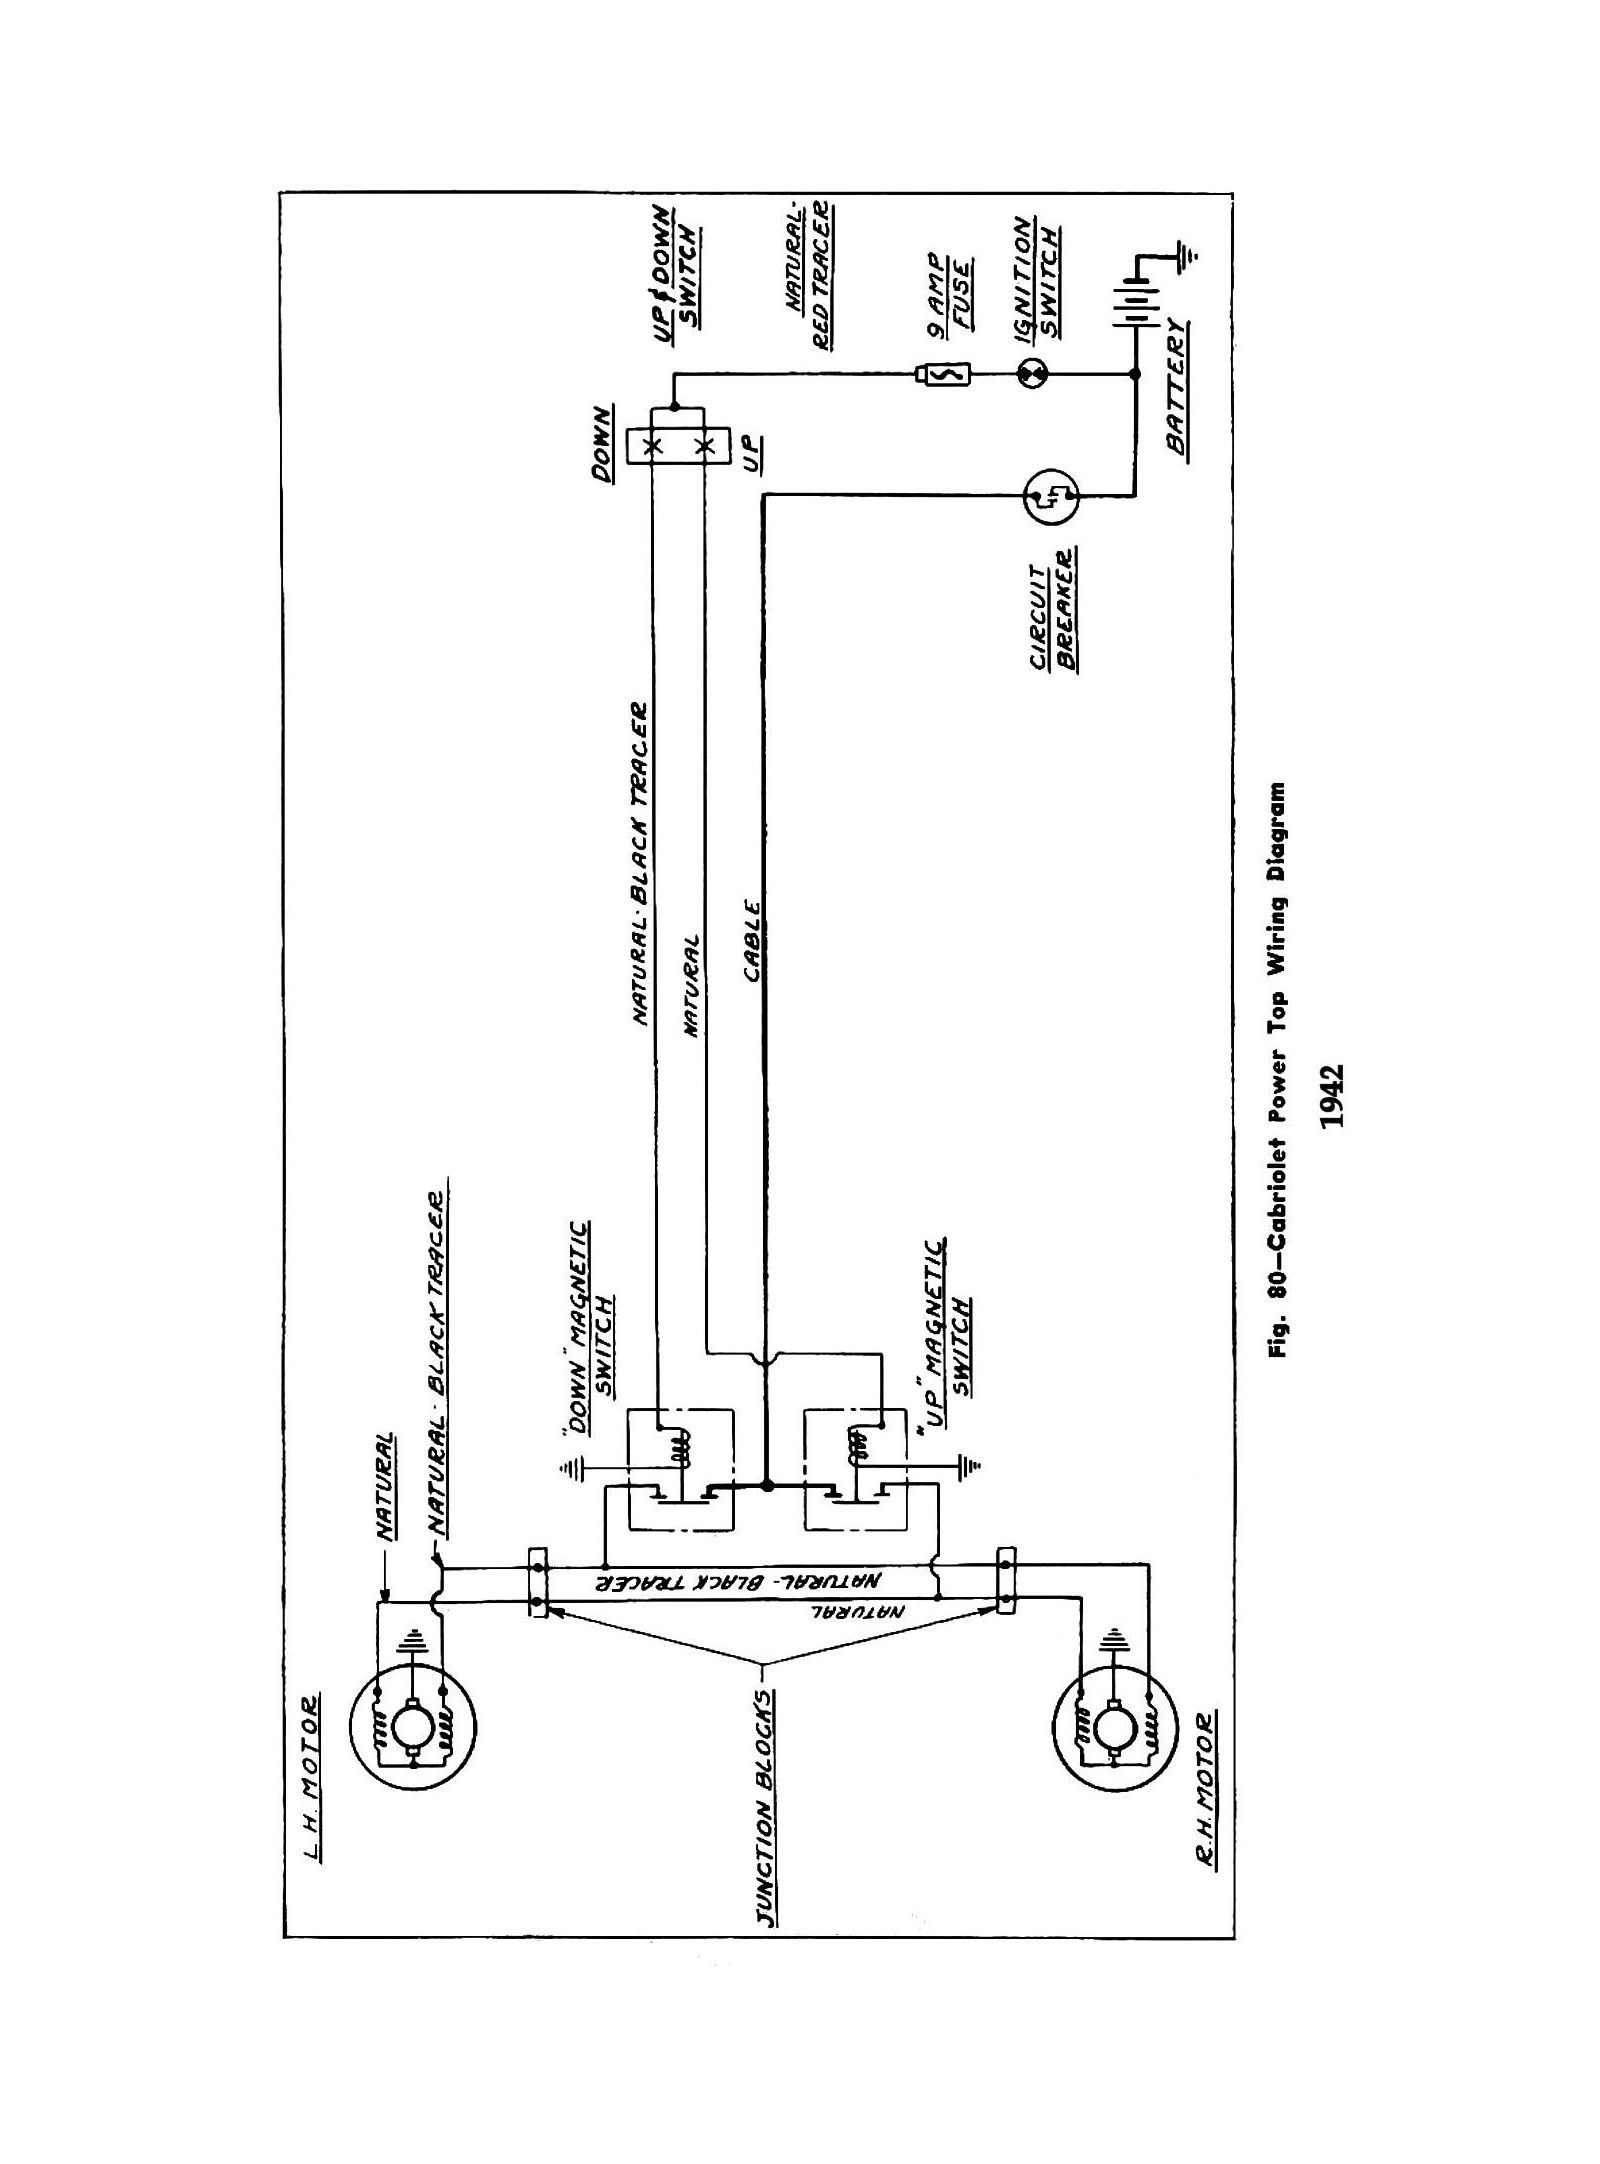 Chevy Wiring Diagrams 2006 Gmc Sierra Fog Light Diagram 1942 Truck Cabriolet Power Top